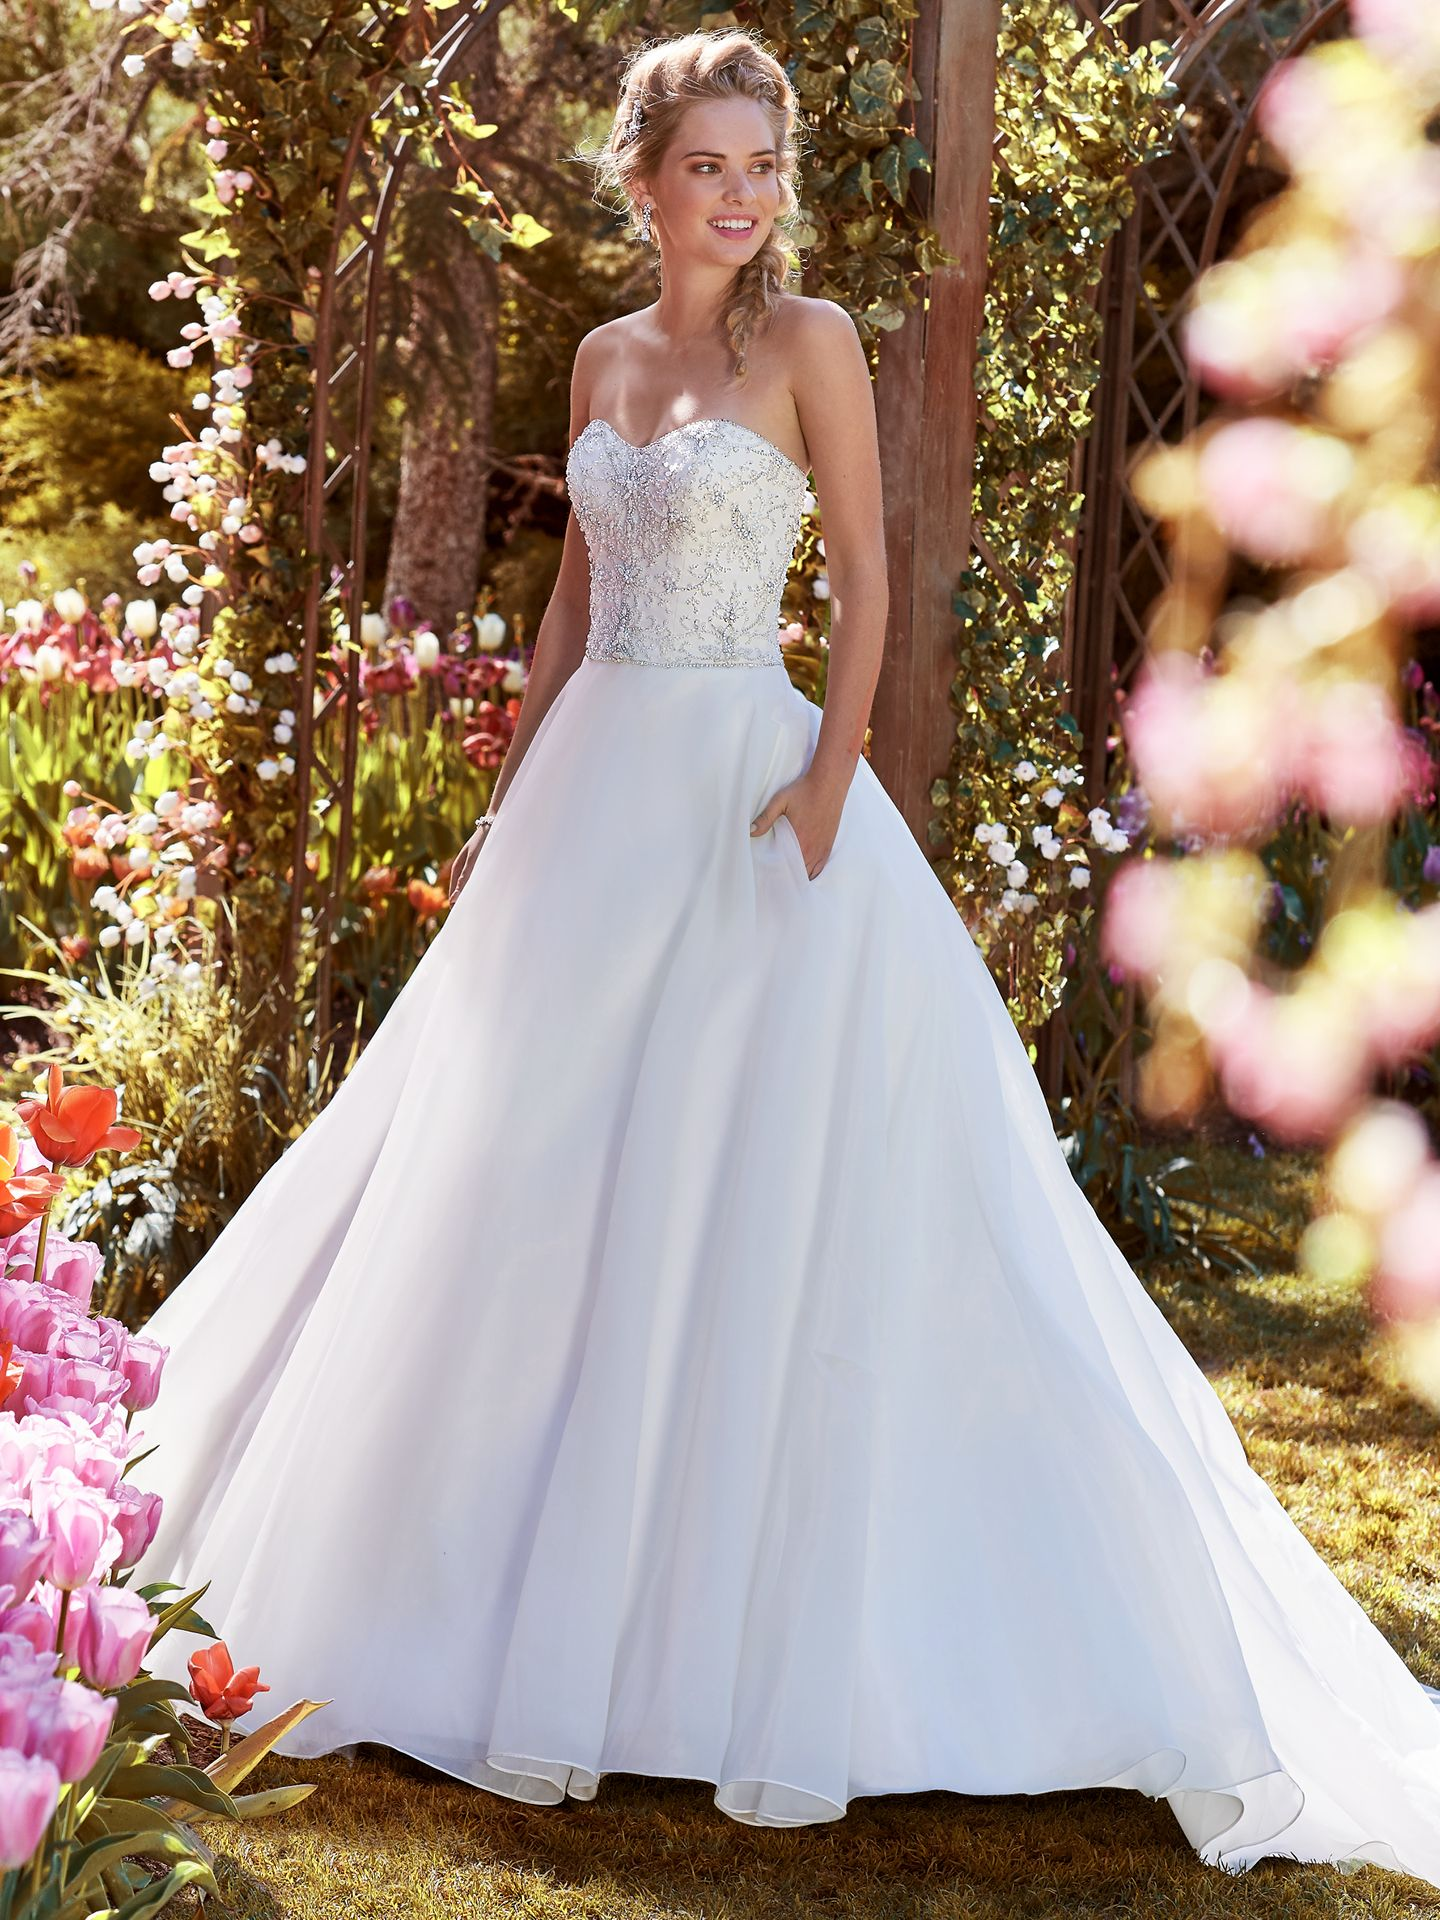 Diamond white wedding dresses, Wedding Dress Color Guide: Shades of White  for Every Bride. Diamond white wedding dresses